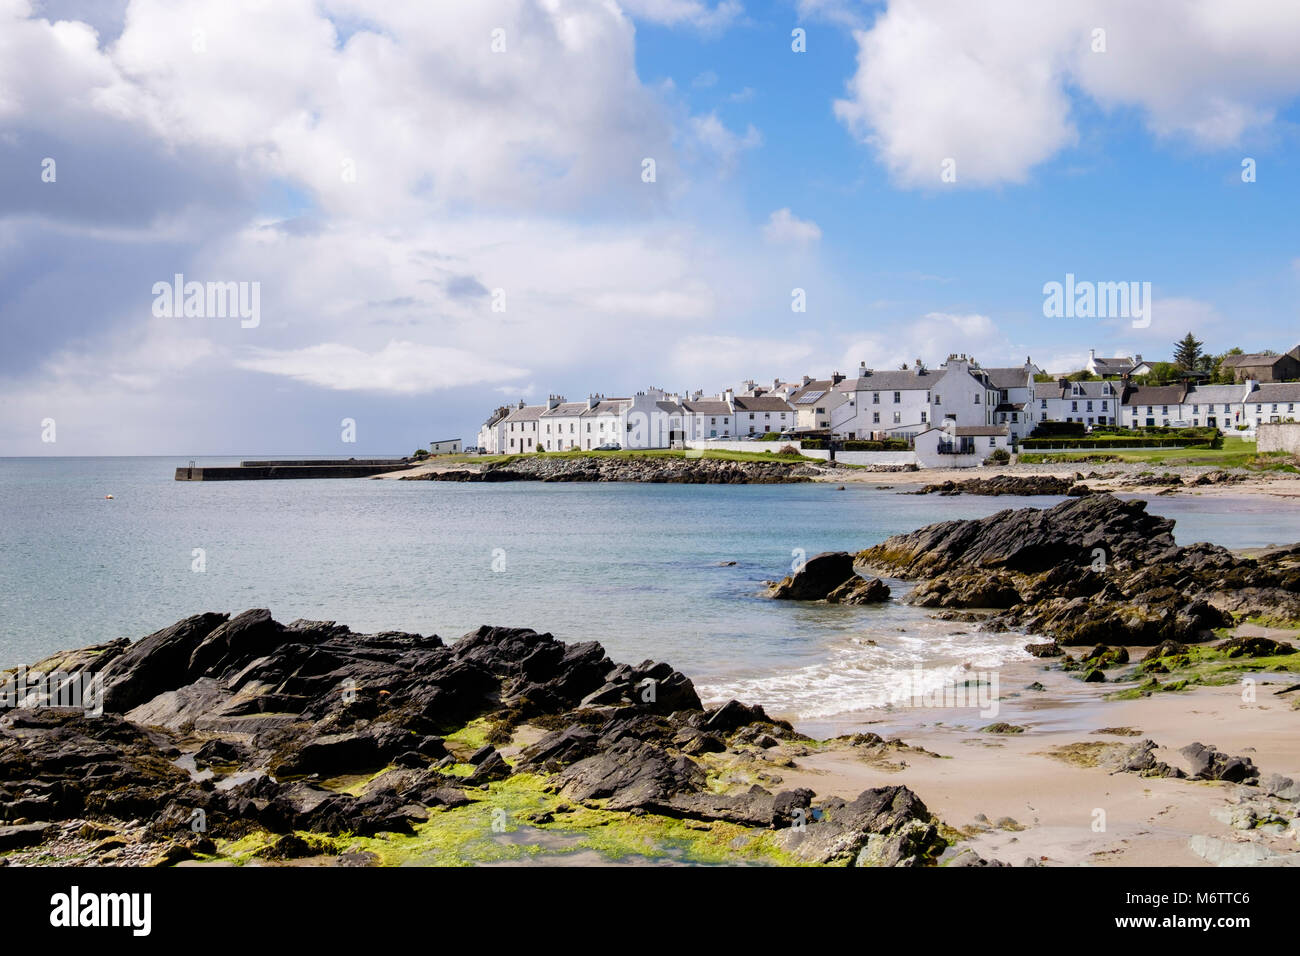 View along rocky Scottish island coast of Loch Indaal to Port Charlotte, Isle of Islay, Argyll and Bute, Inner Hebrides, - Stock Image